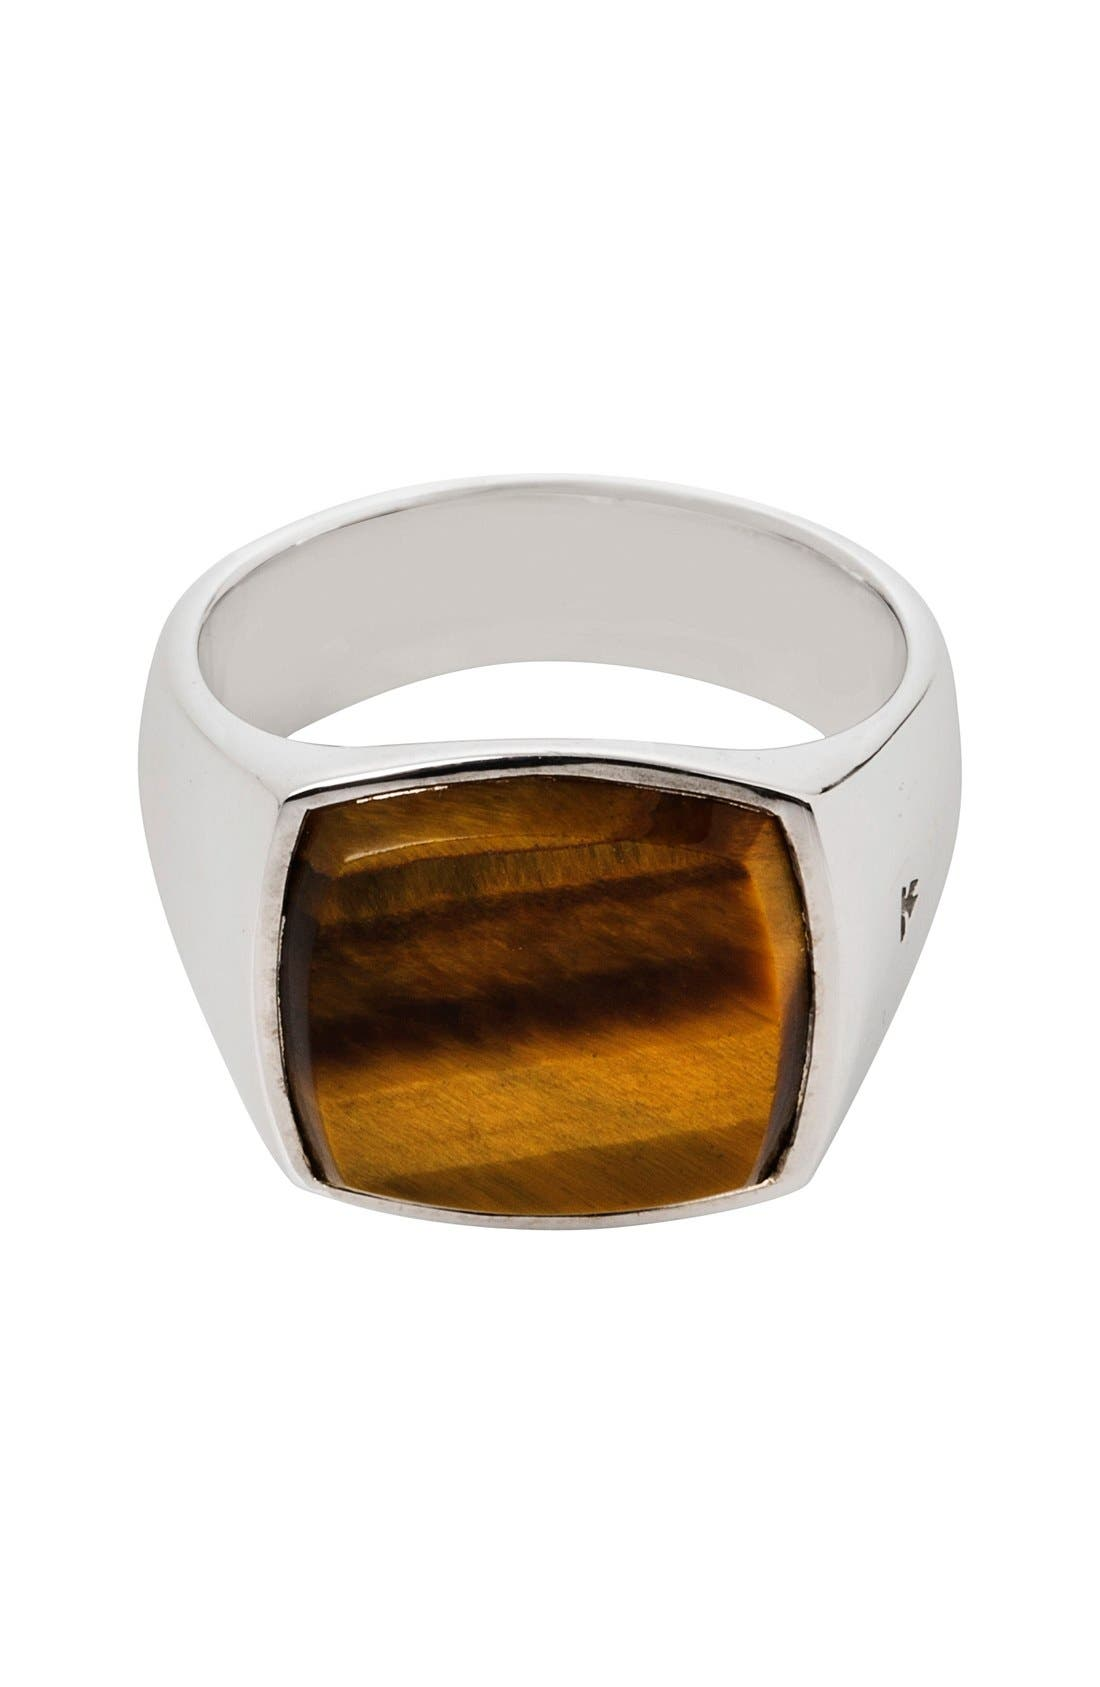 Cushion Tiger's Eye Signet Ring,                         Main,                         color, 040